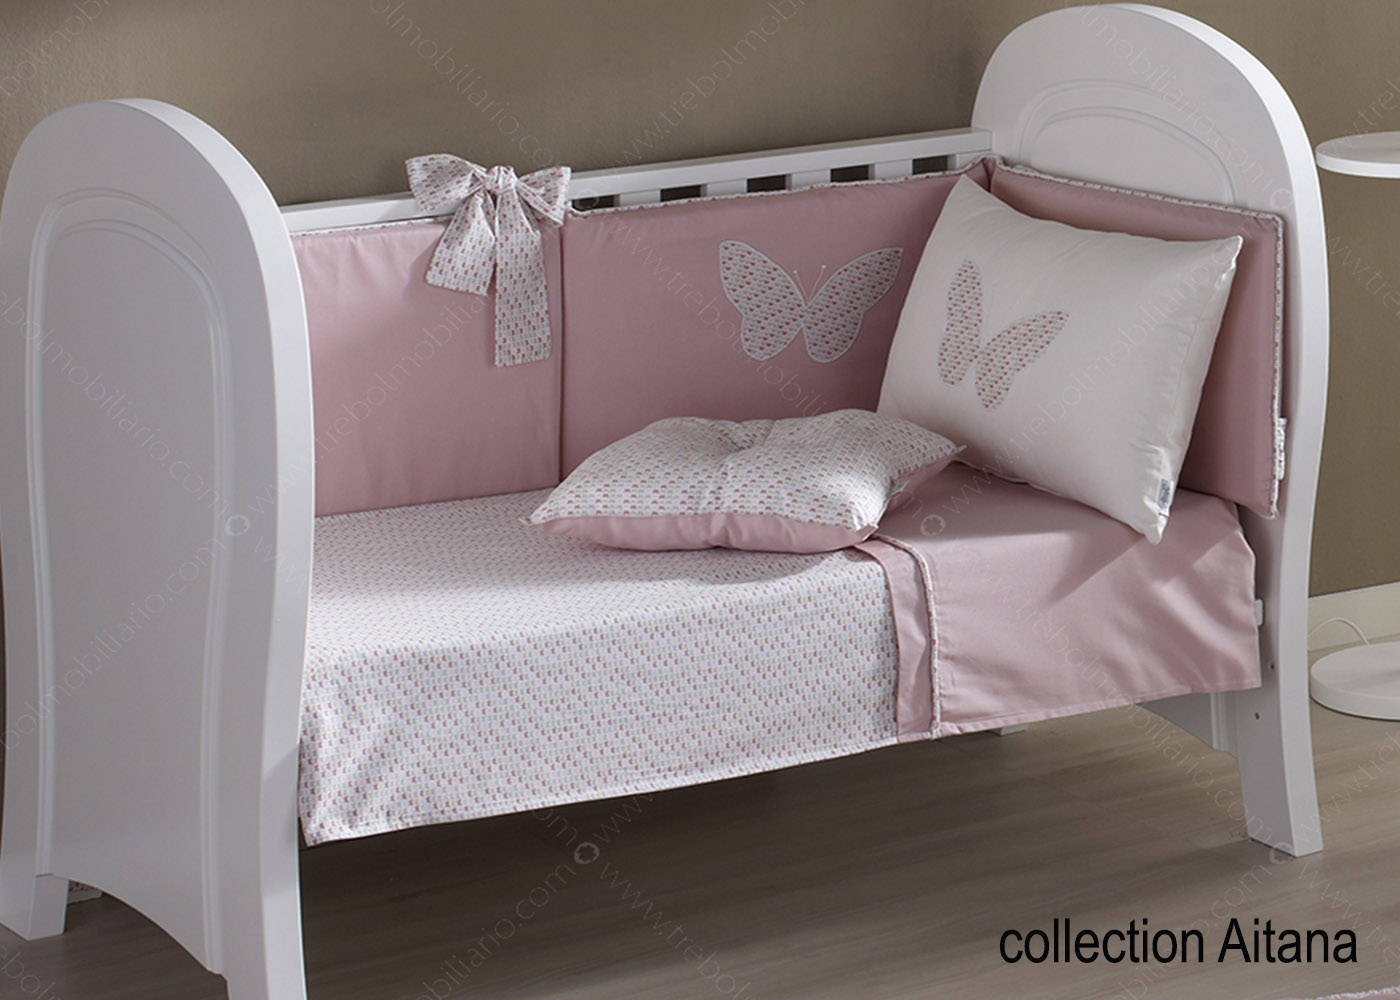 housse de couette pour lit b b et enfant chez ksl living. Black Bedroom Furniture Sets. Home Design Ideas